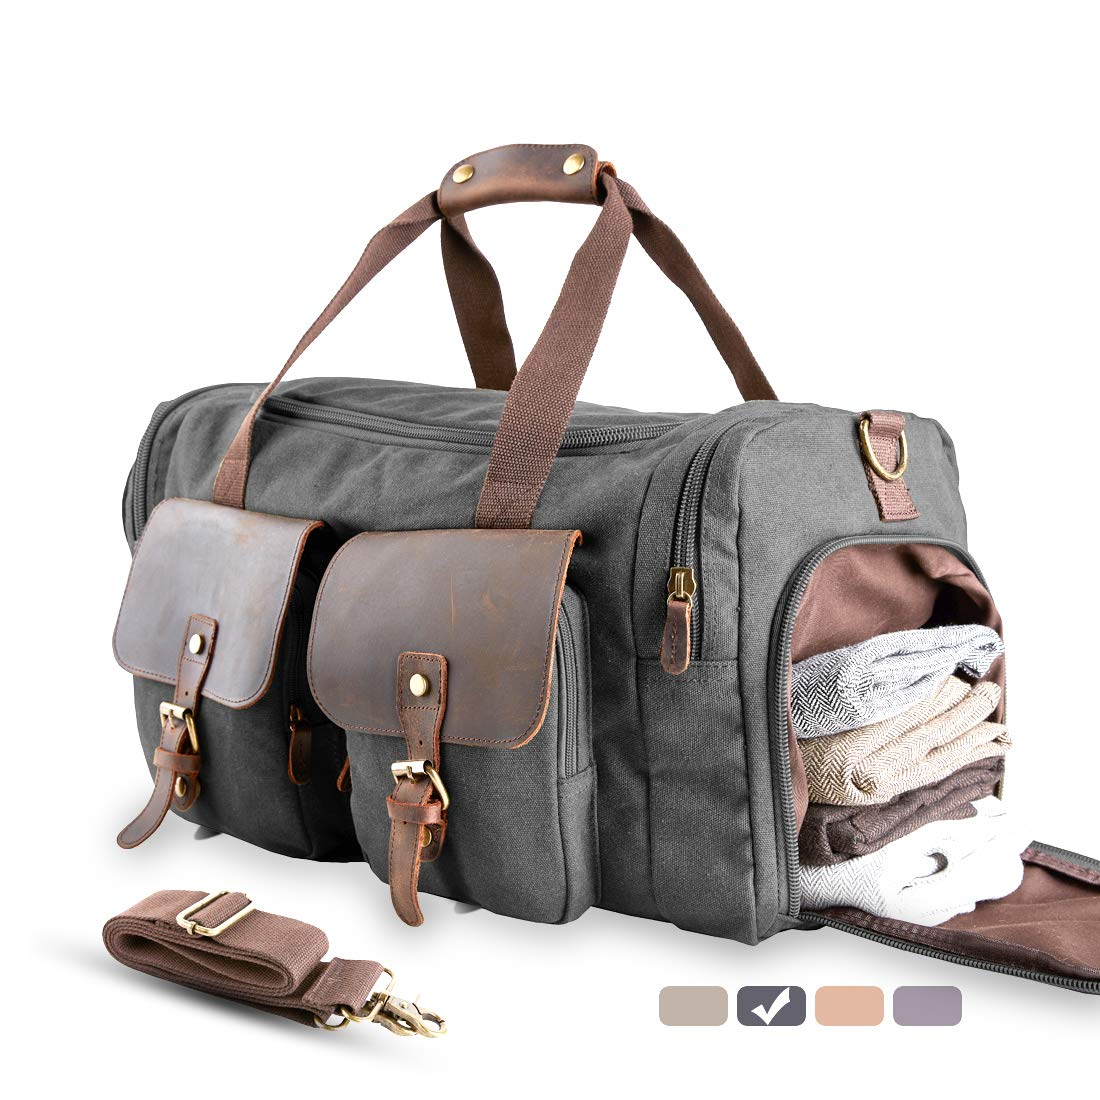 MEWAY Multi-Functional Canvas Overnight Bag With Shoes Compartment, Sports Gym Travel Duffle Weekender Bag For Women Men (SILVER GREY, ✔Genuine Leather)